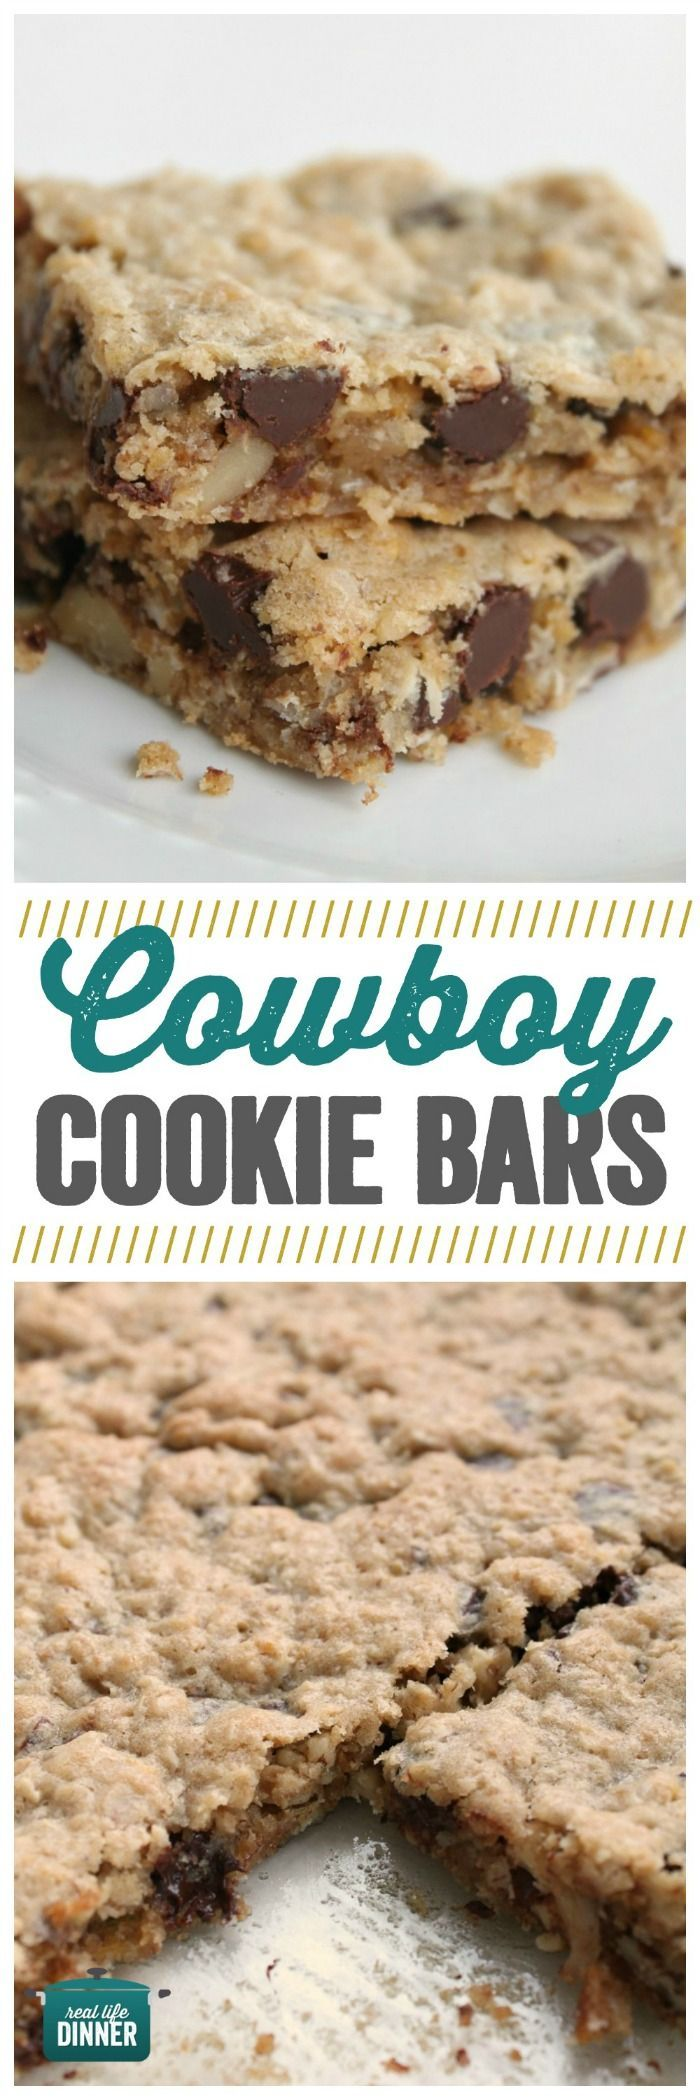 A faster way to make delicious Cowboy Cookies. Soft and Chewy with just the right amount of crunch and chocolate. ~ http://reallifedinner.com